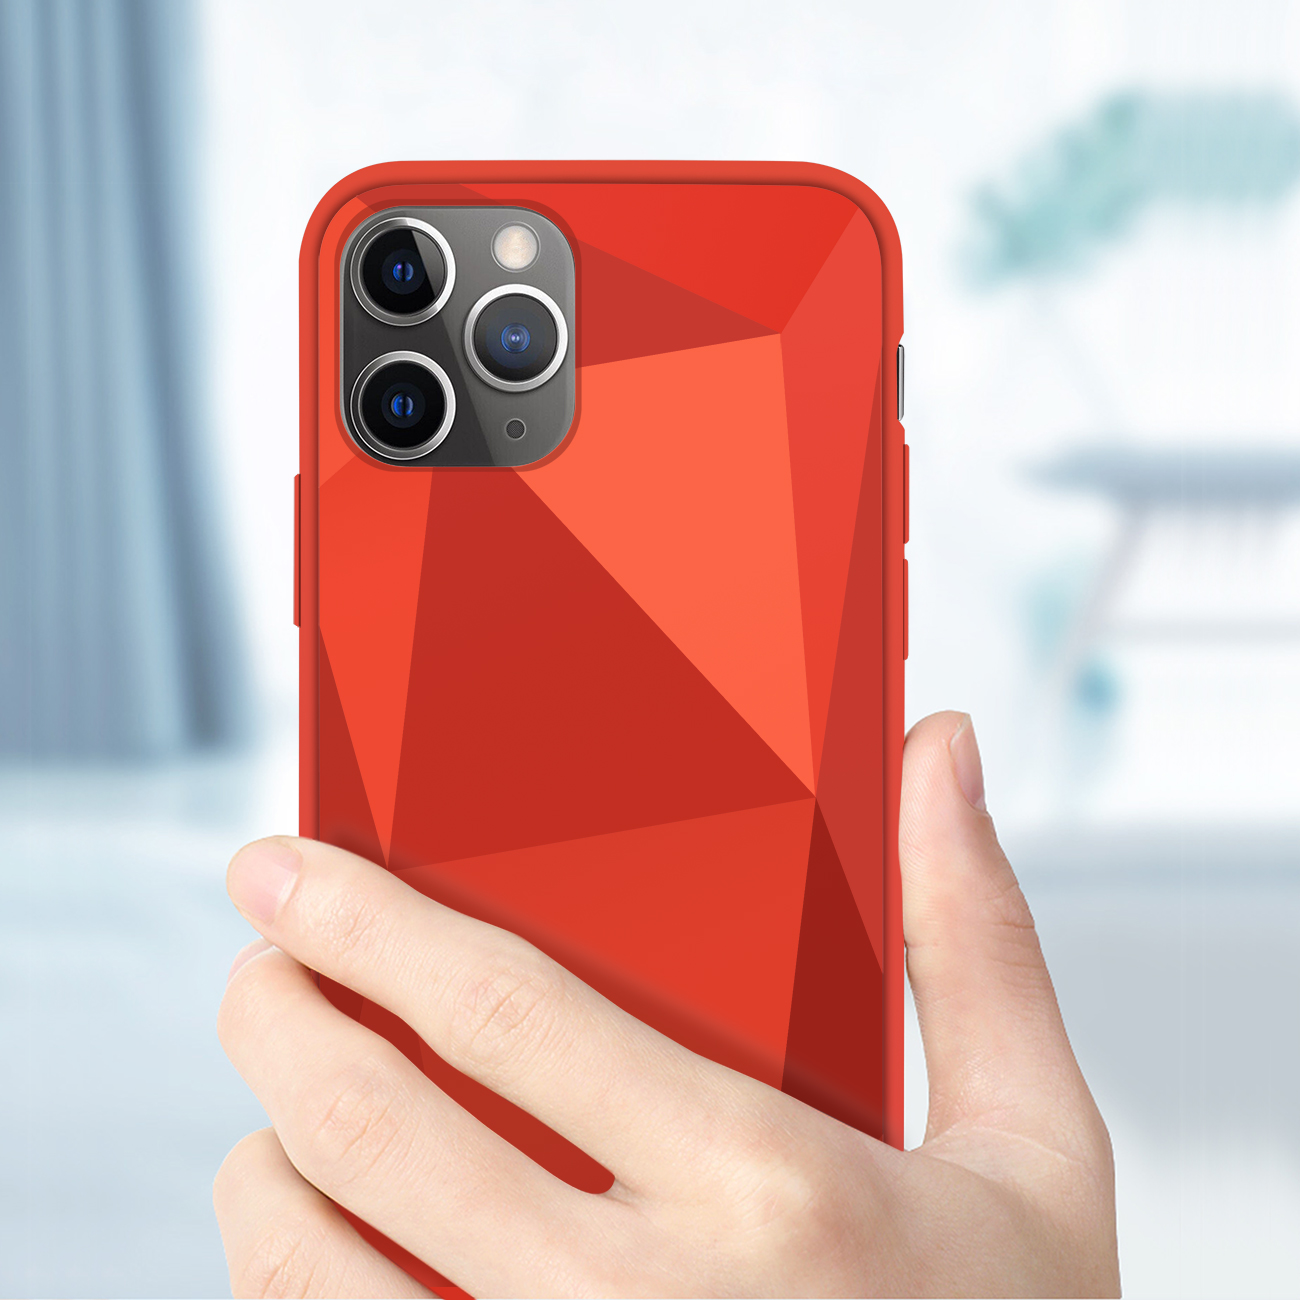 Apple iPhone 11 Pro Max Apple Diamond Cases In Red